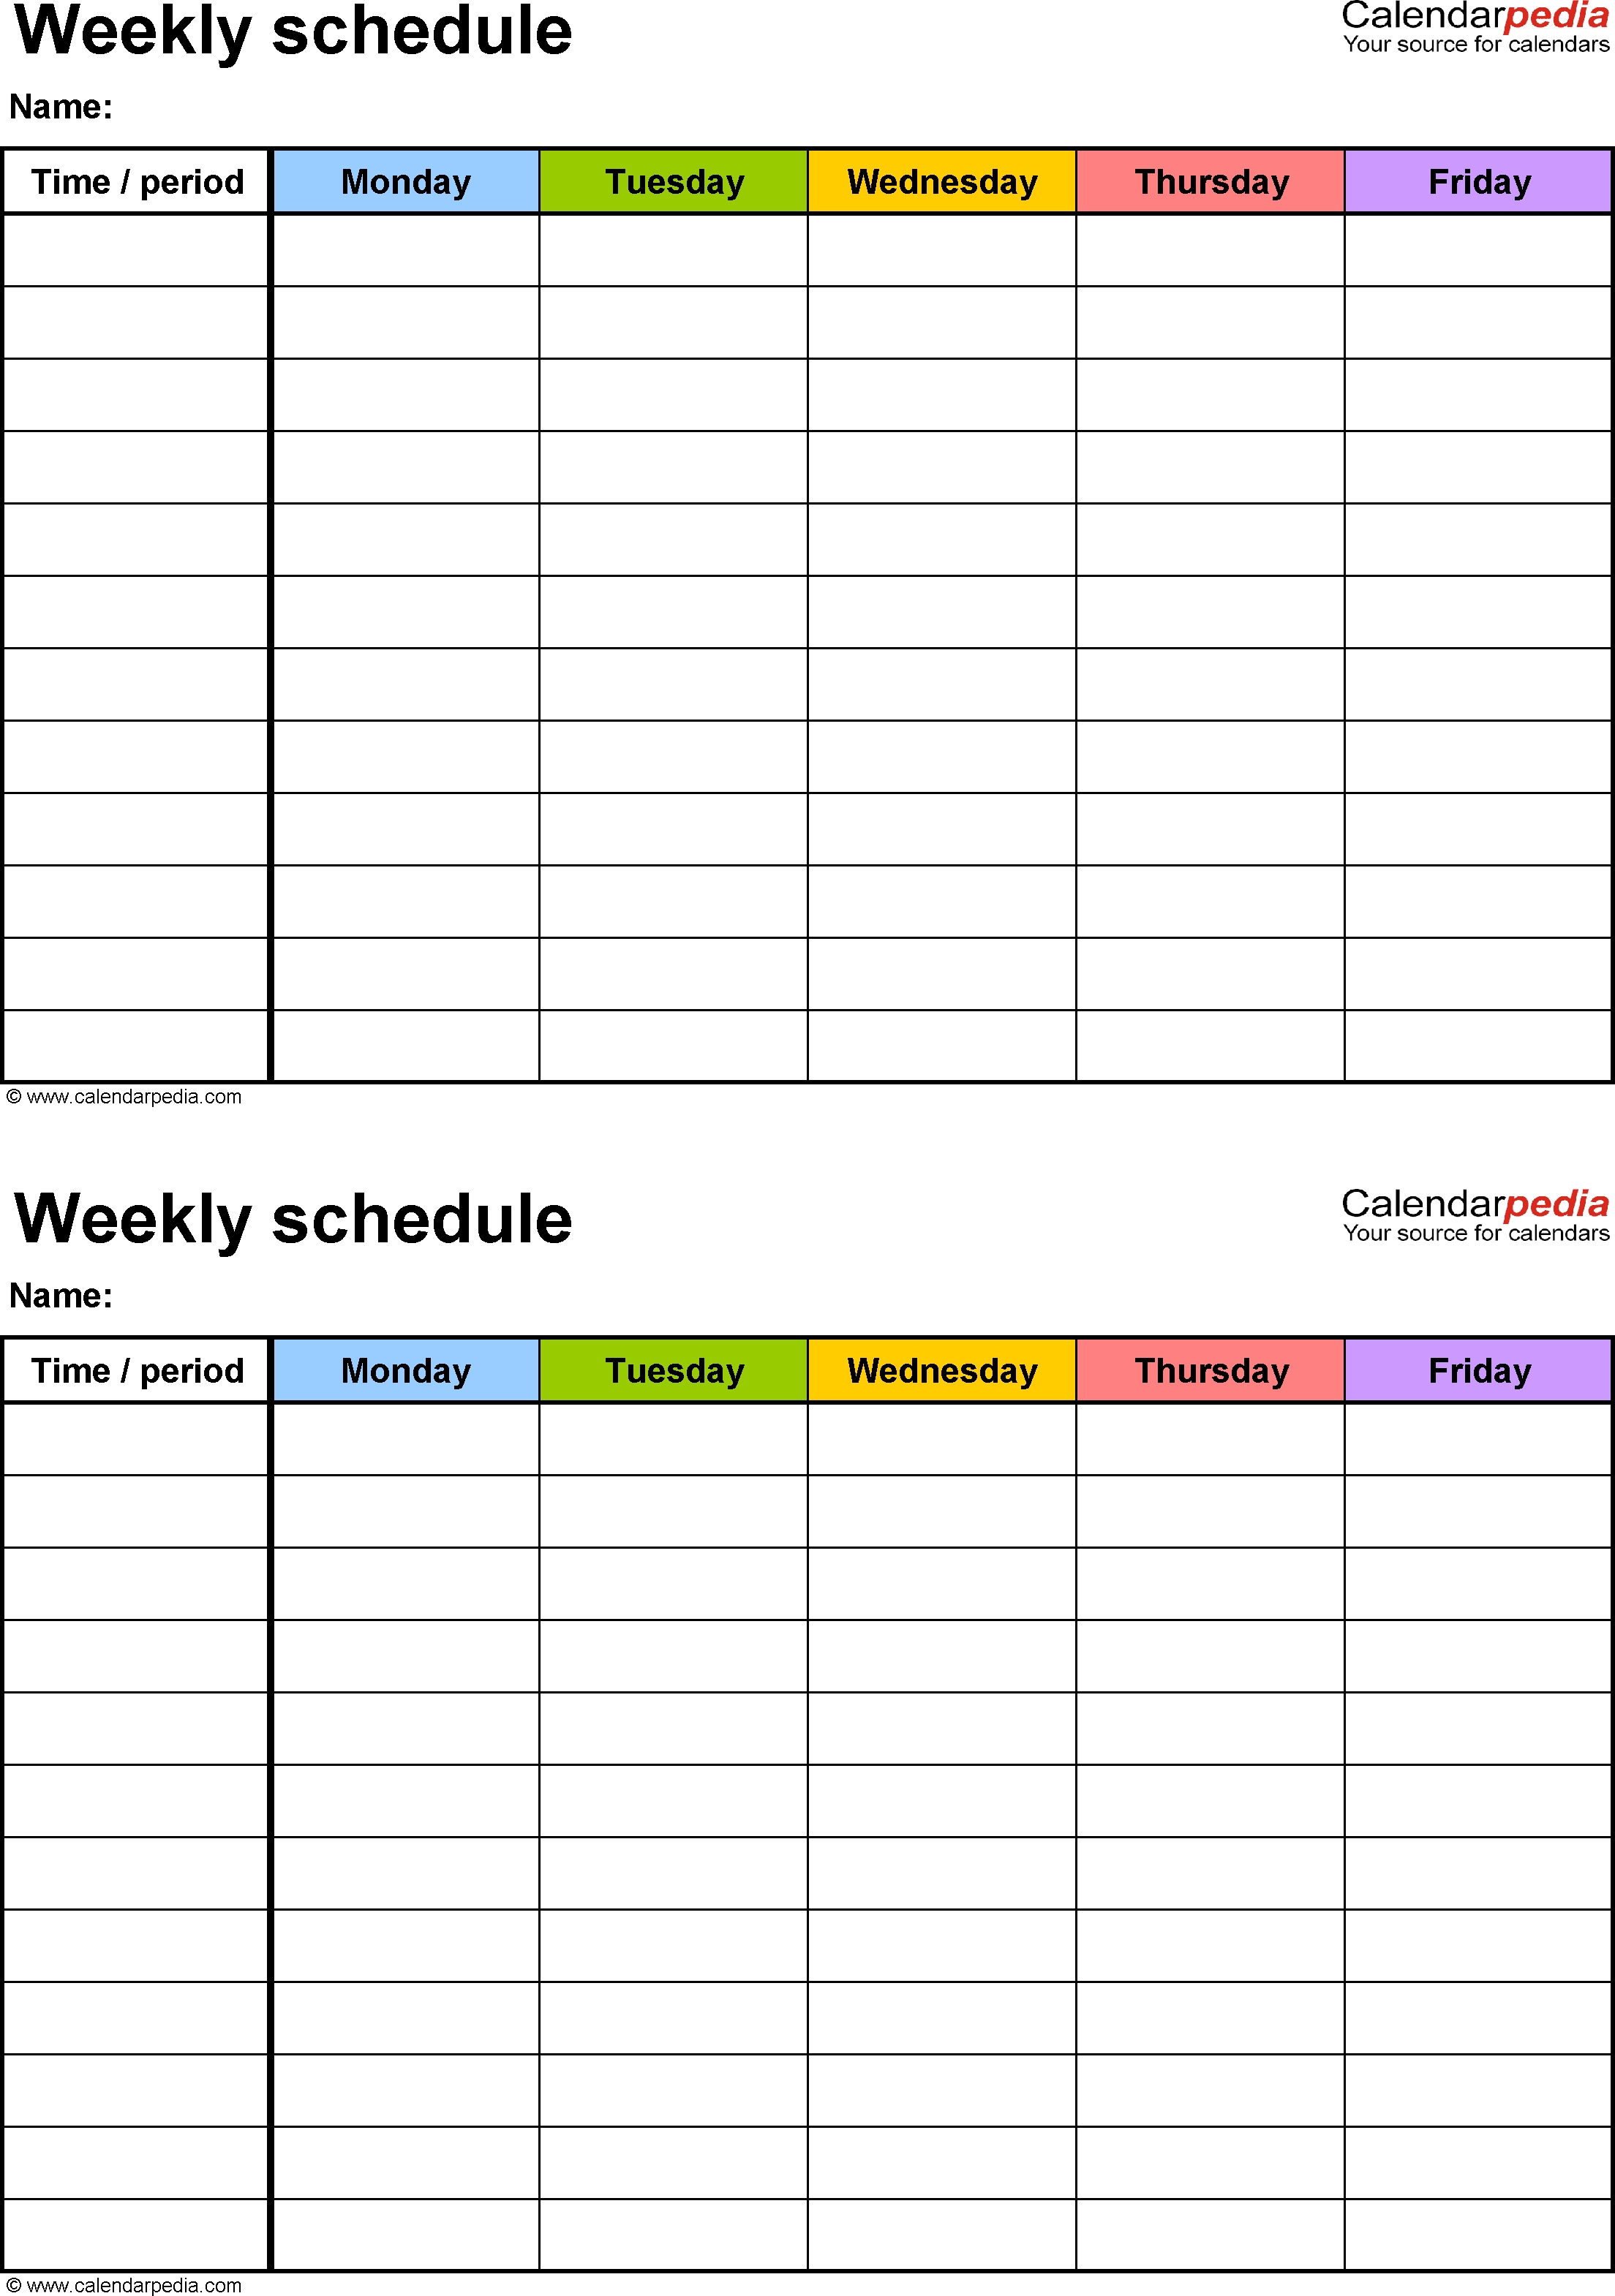 Free Weekly Schedule Templates For Pdf - 18 Templates throughout 7 Day Week Schedule Calendar Pdf